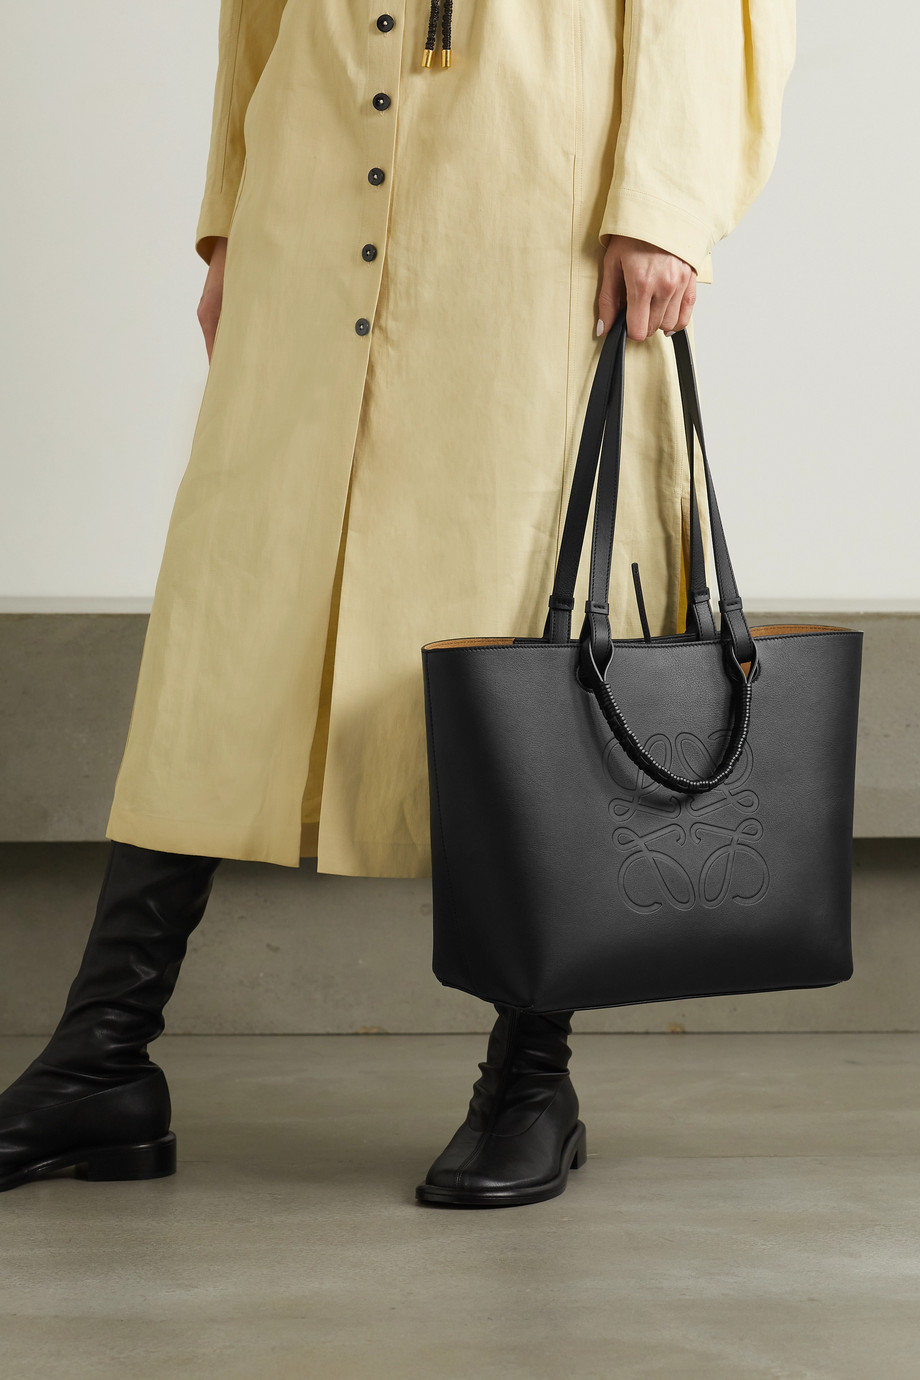 Loewe Anagram medium debossed leather tote